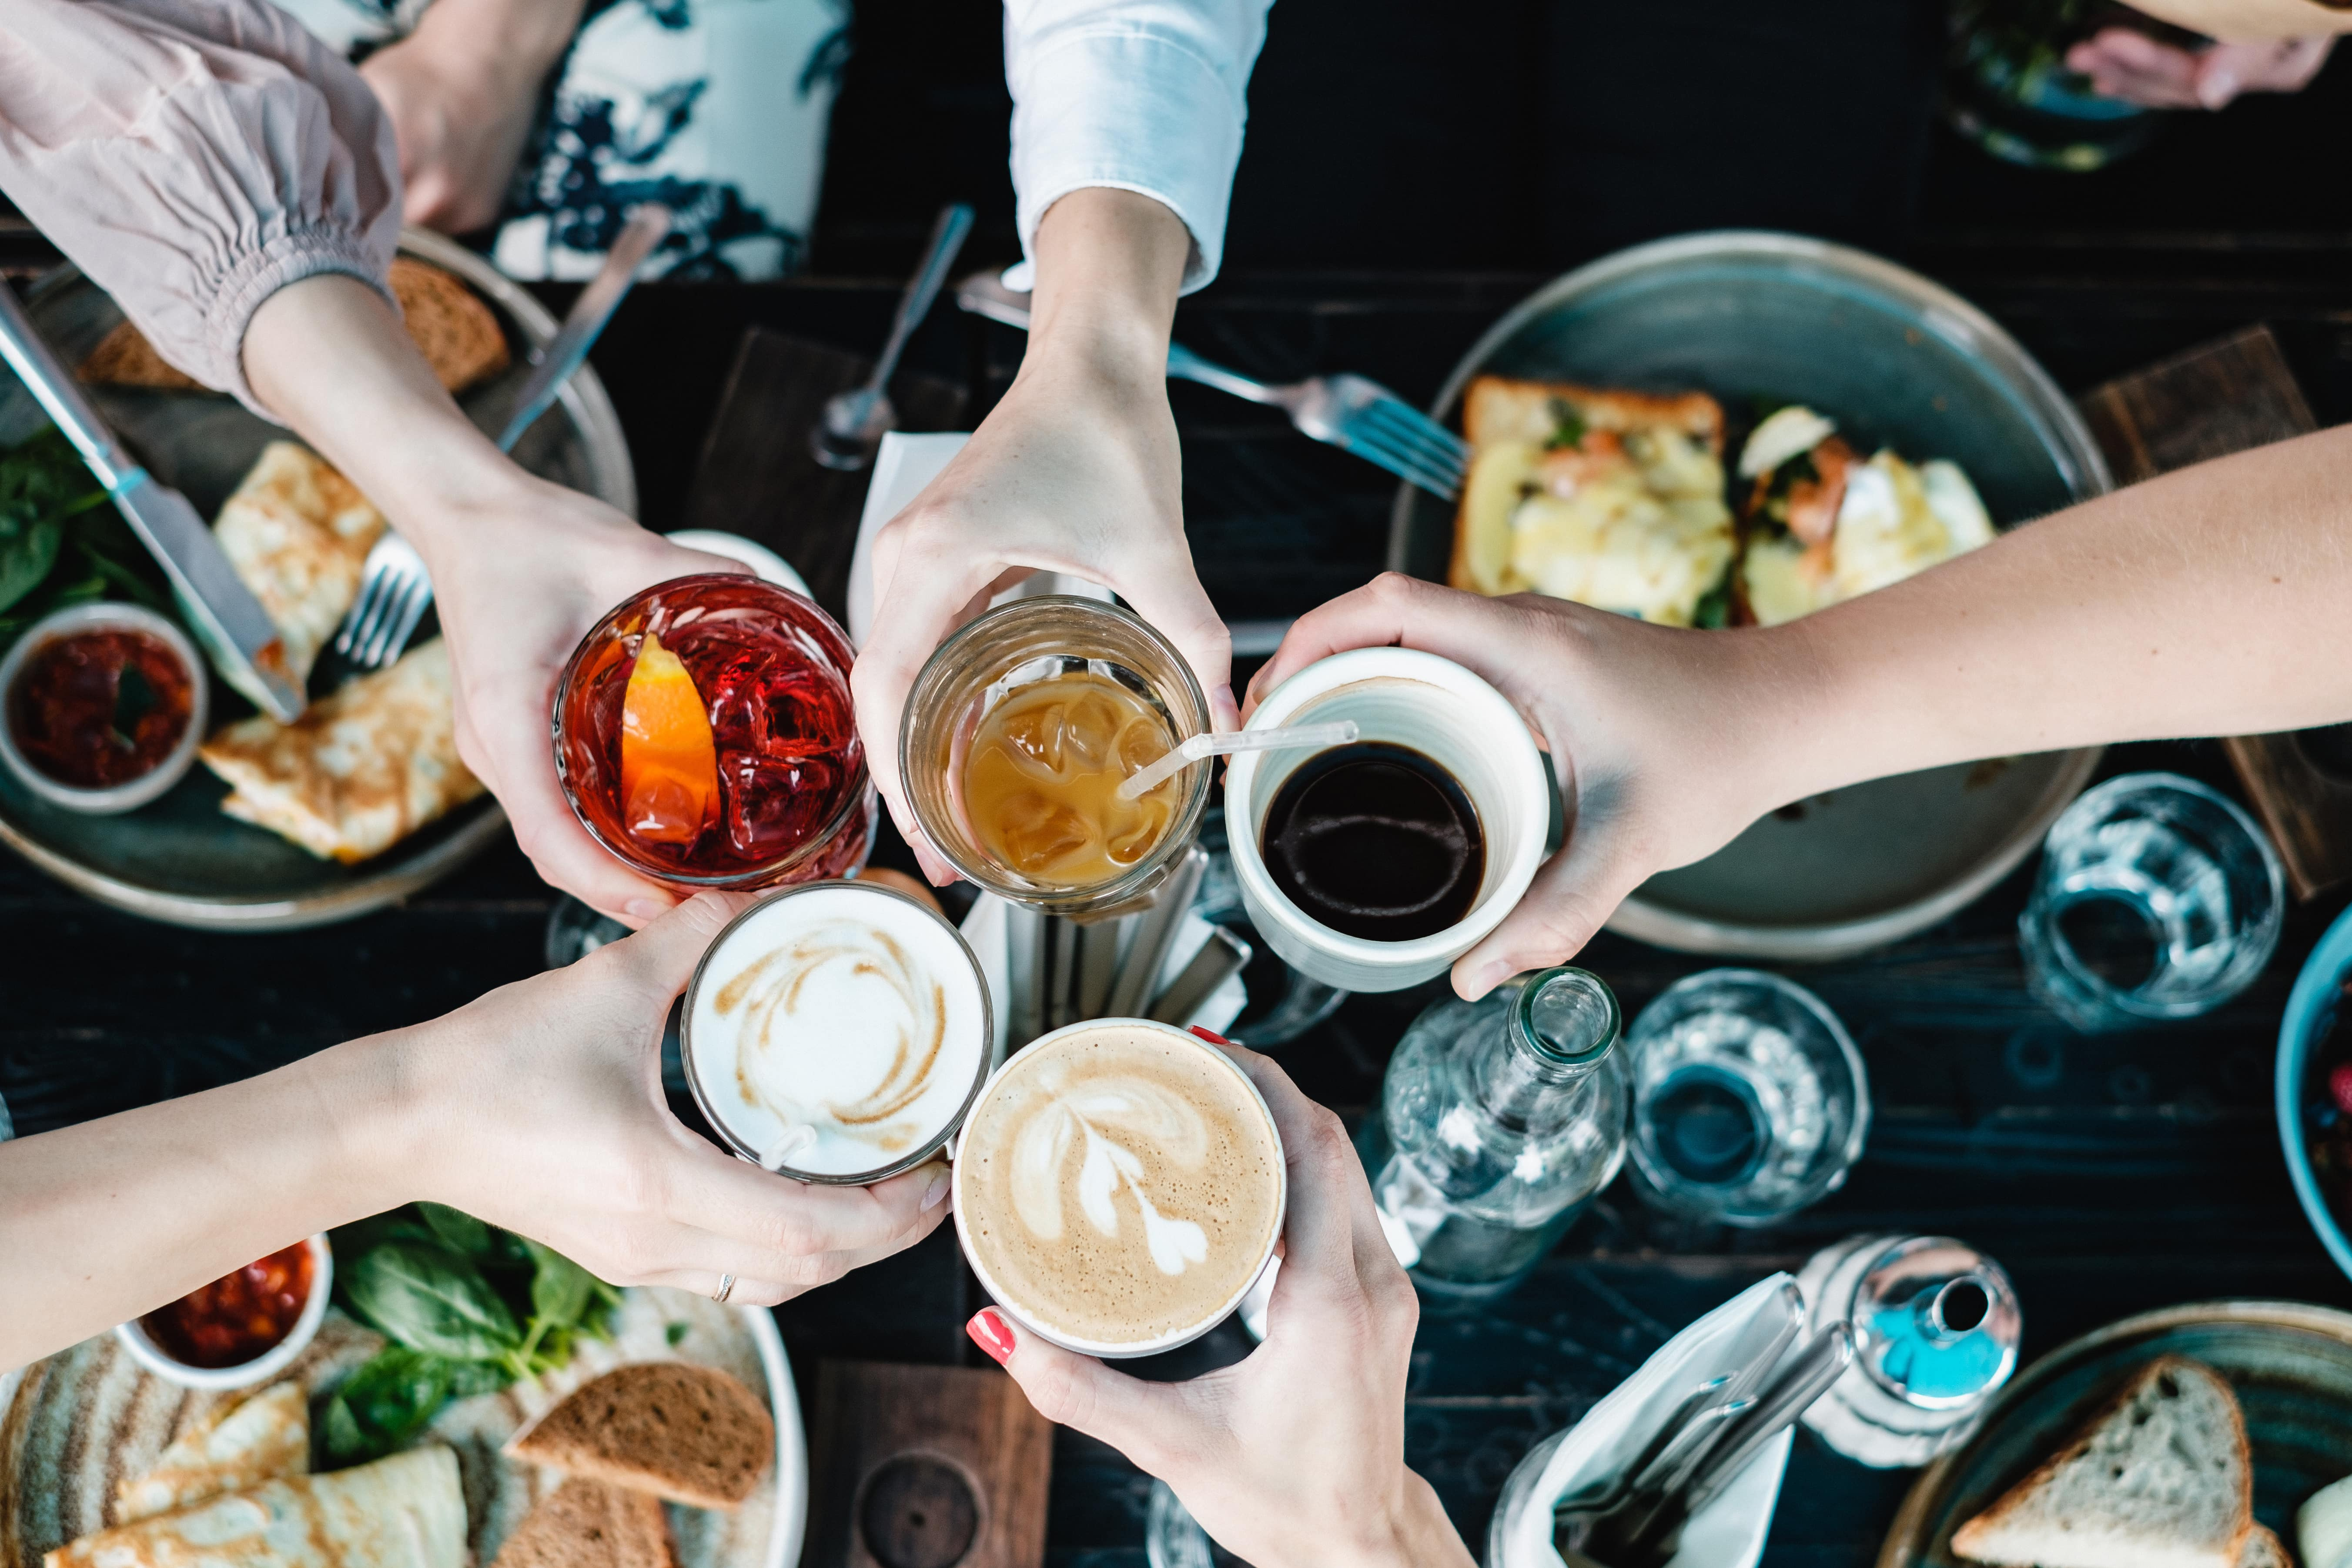 5 Beverages With Hidden Sugar Seniors Should Know About